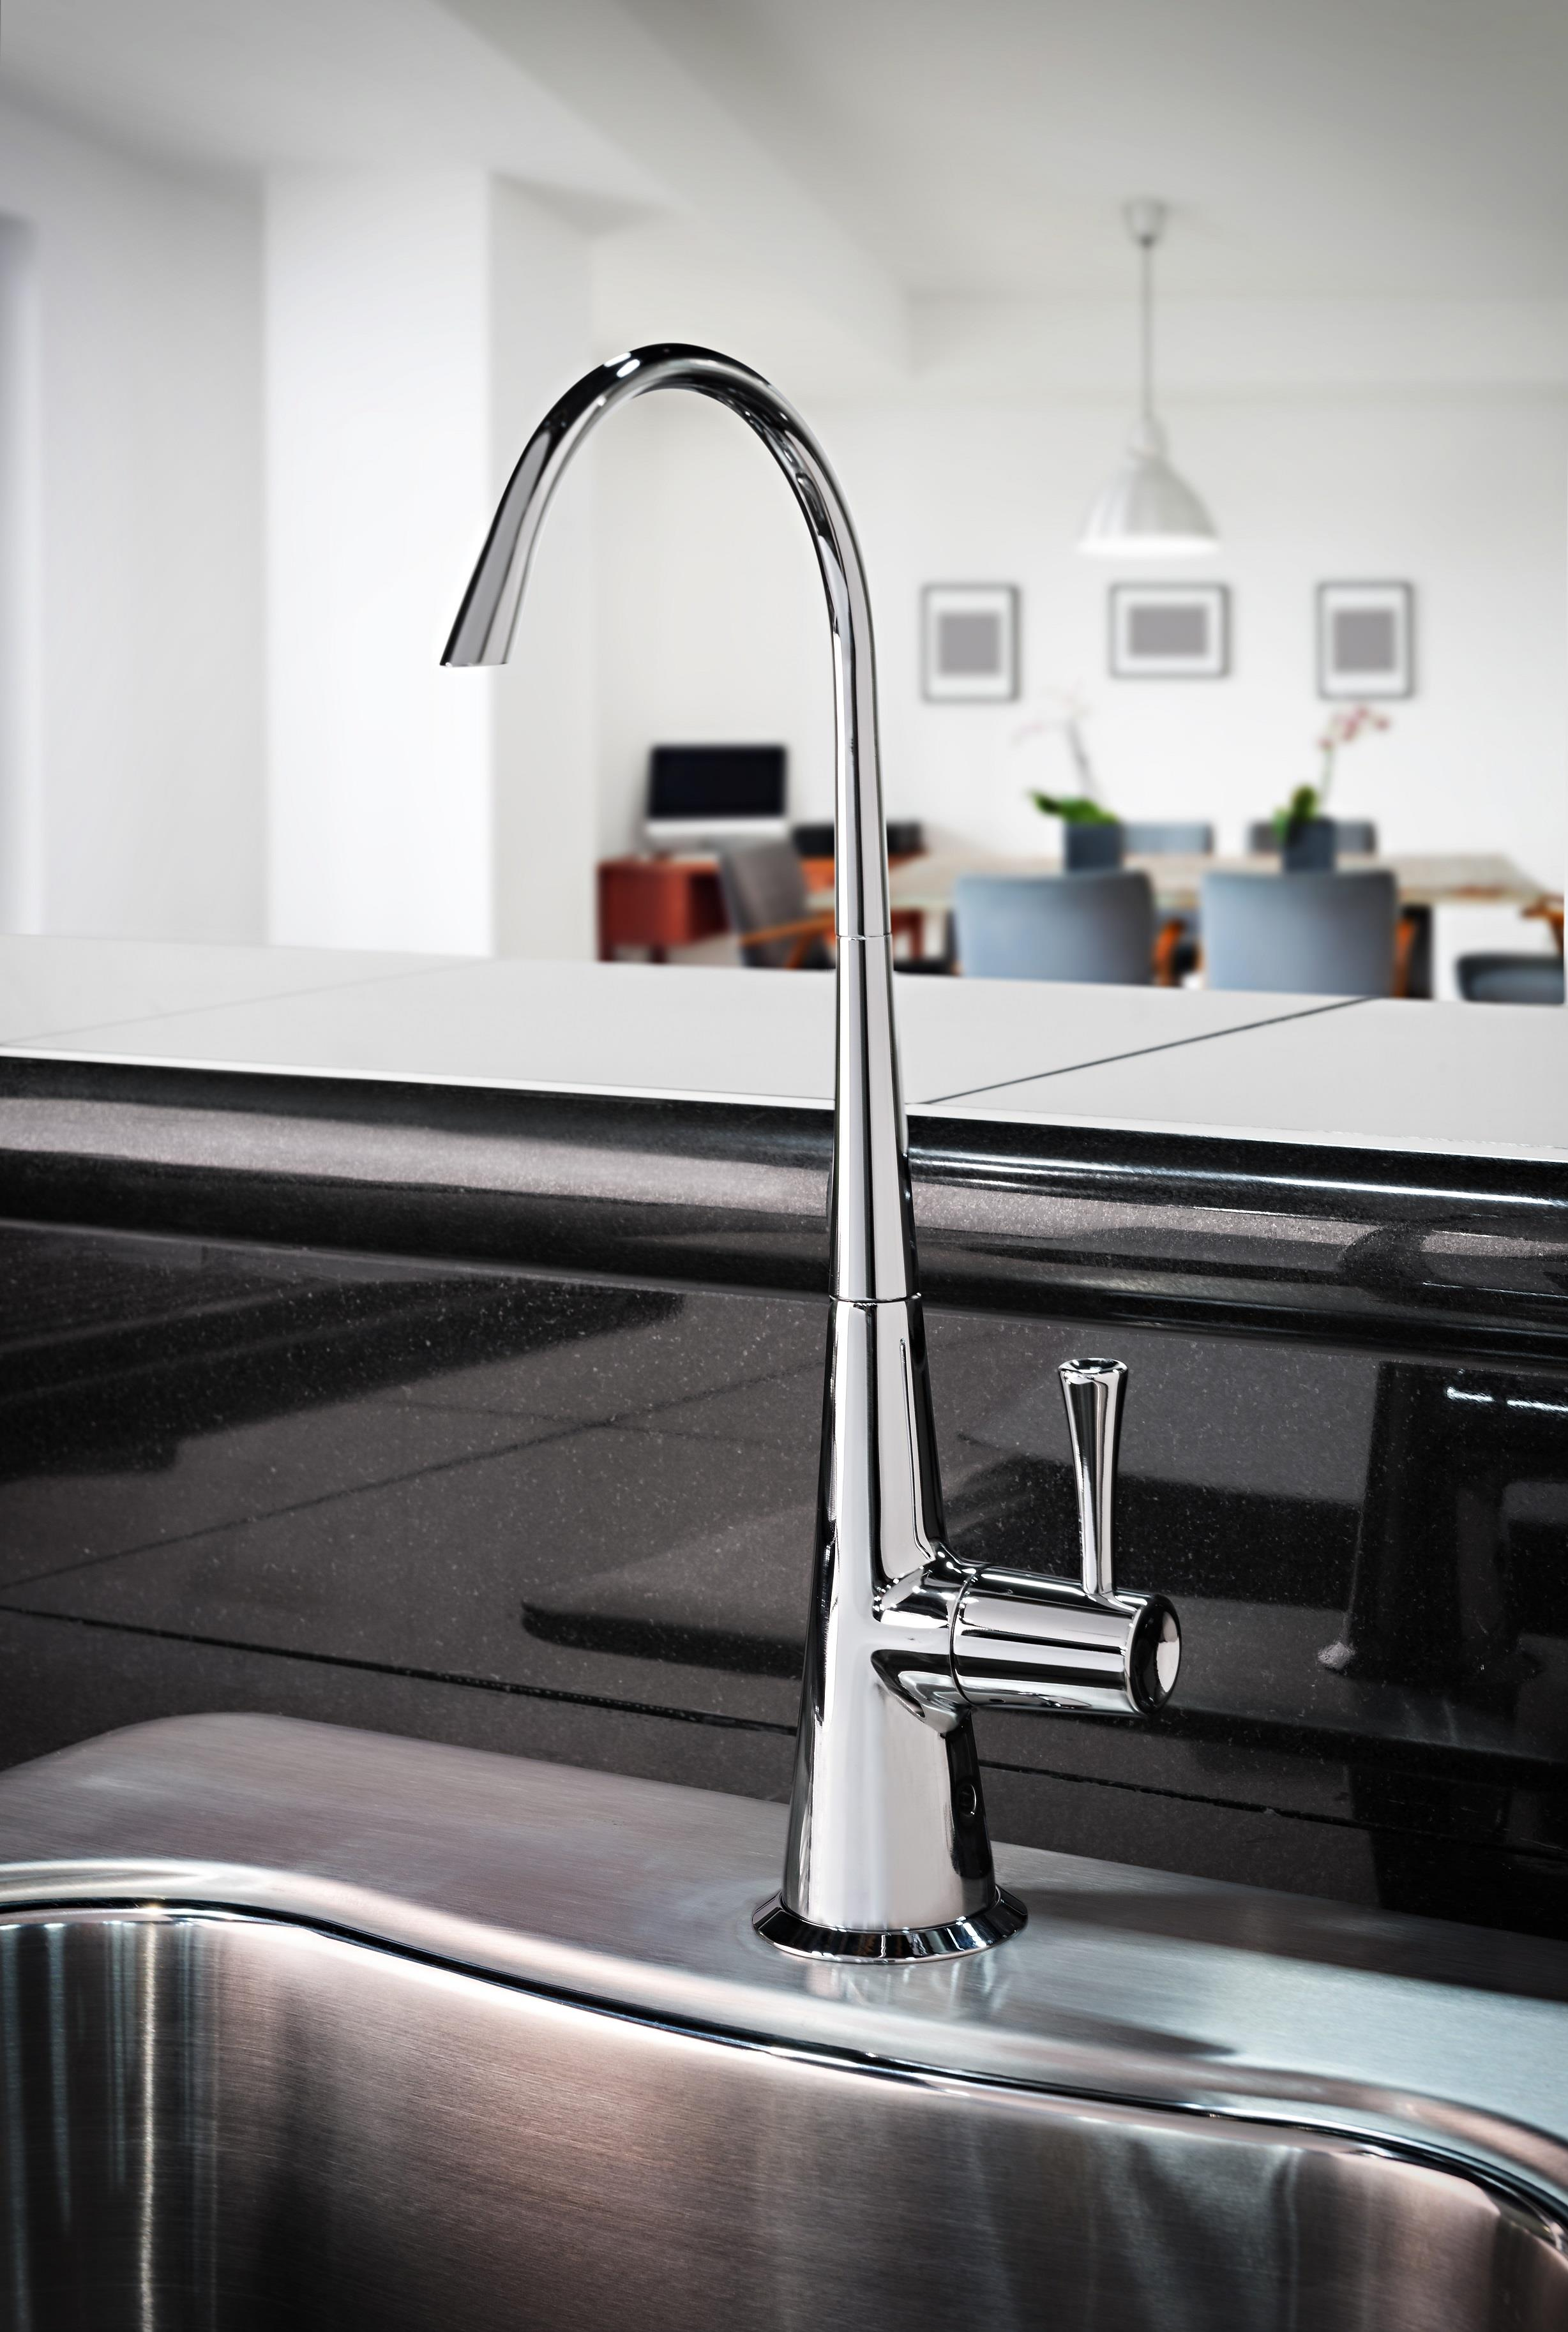 filter faucet gap premium non chrome reverse water universal air osmosis faucets plated